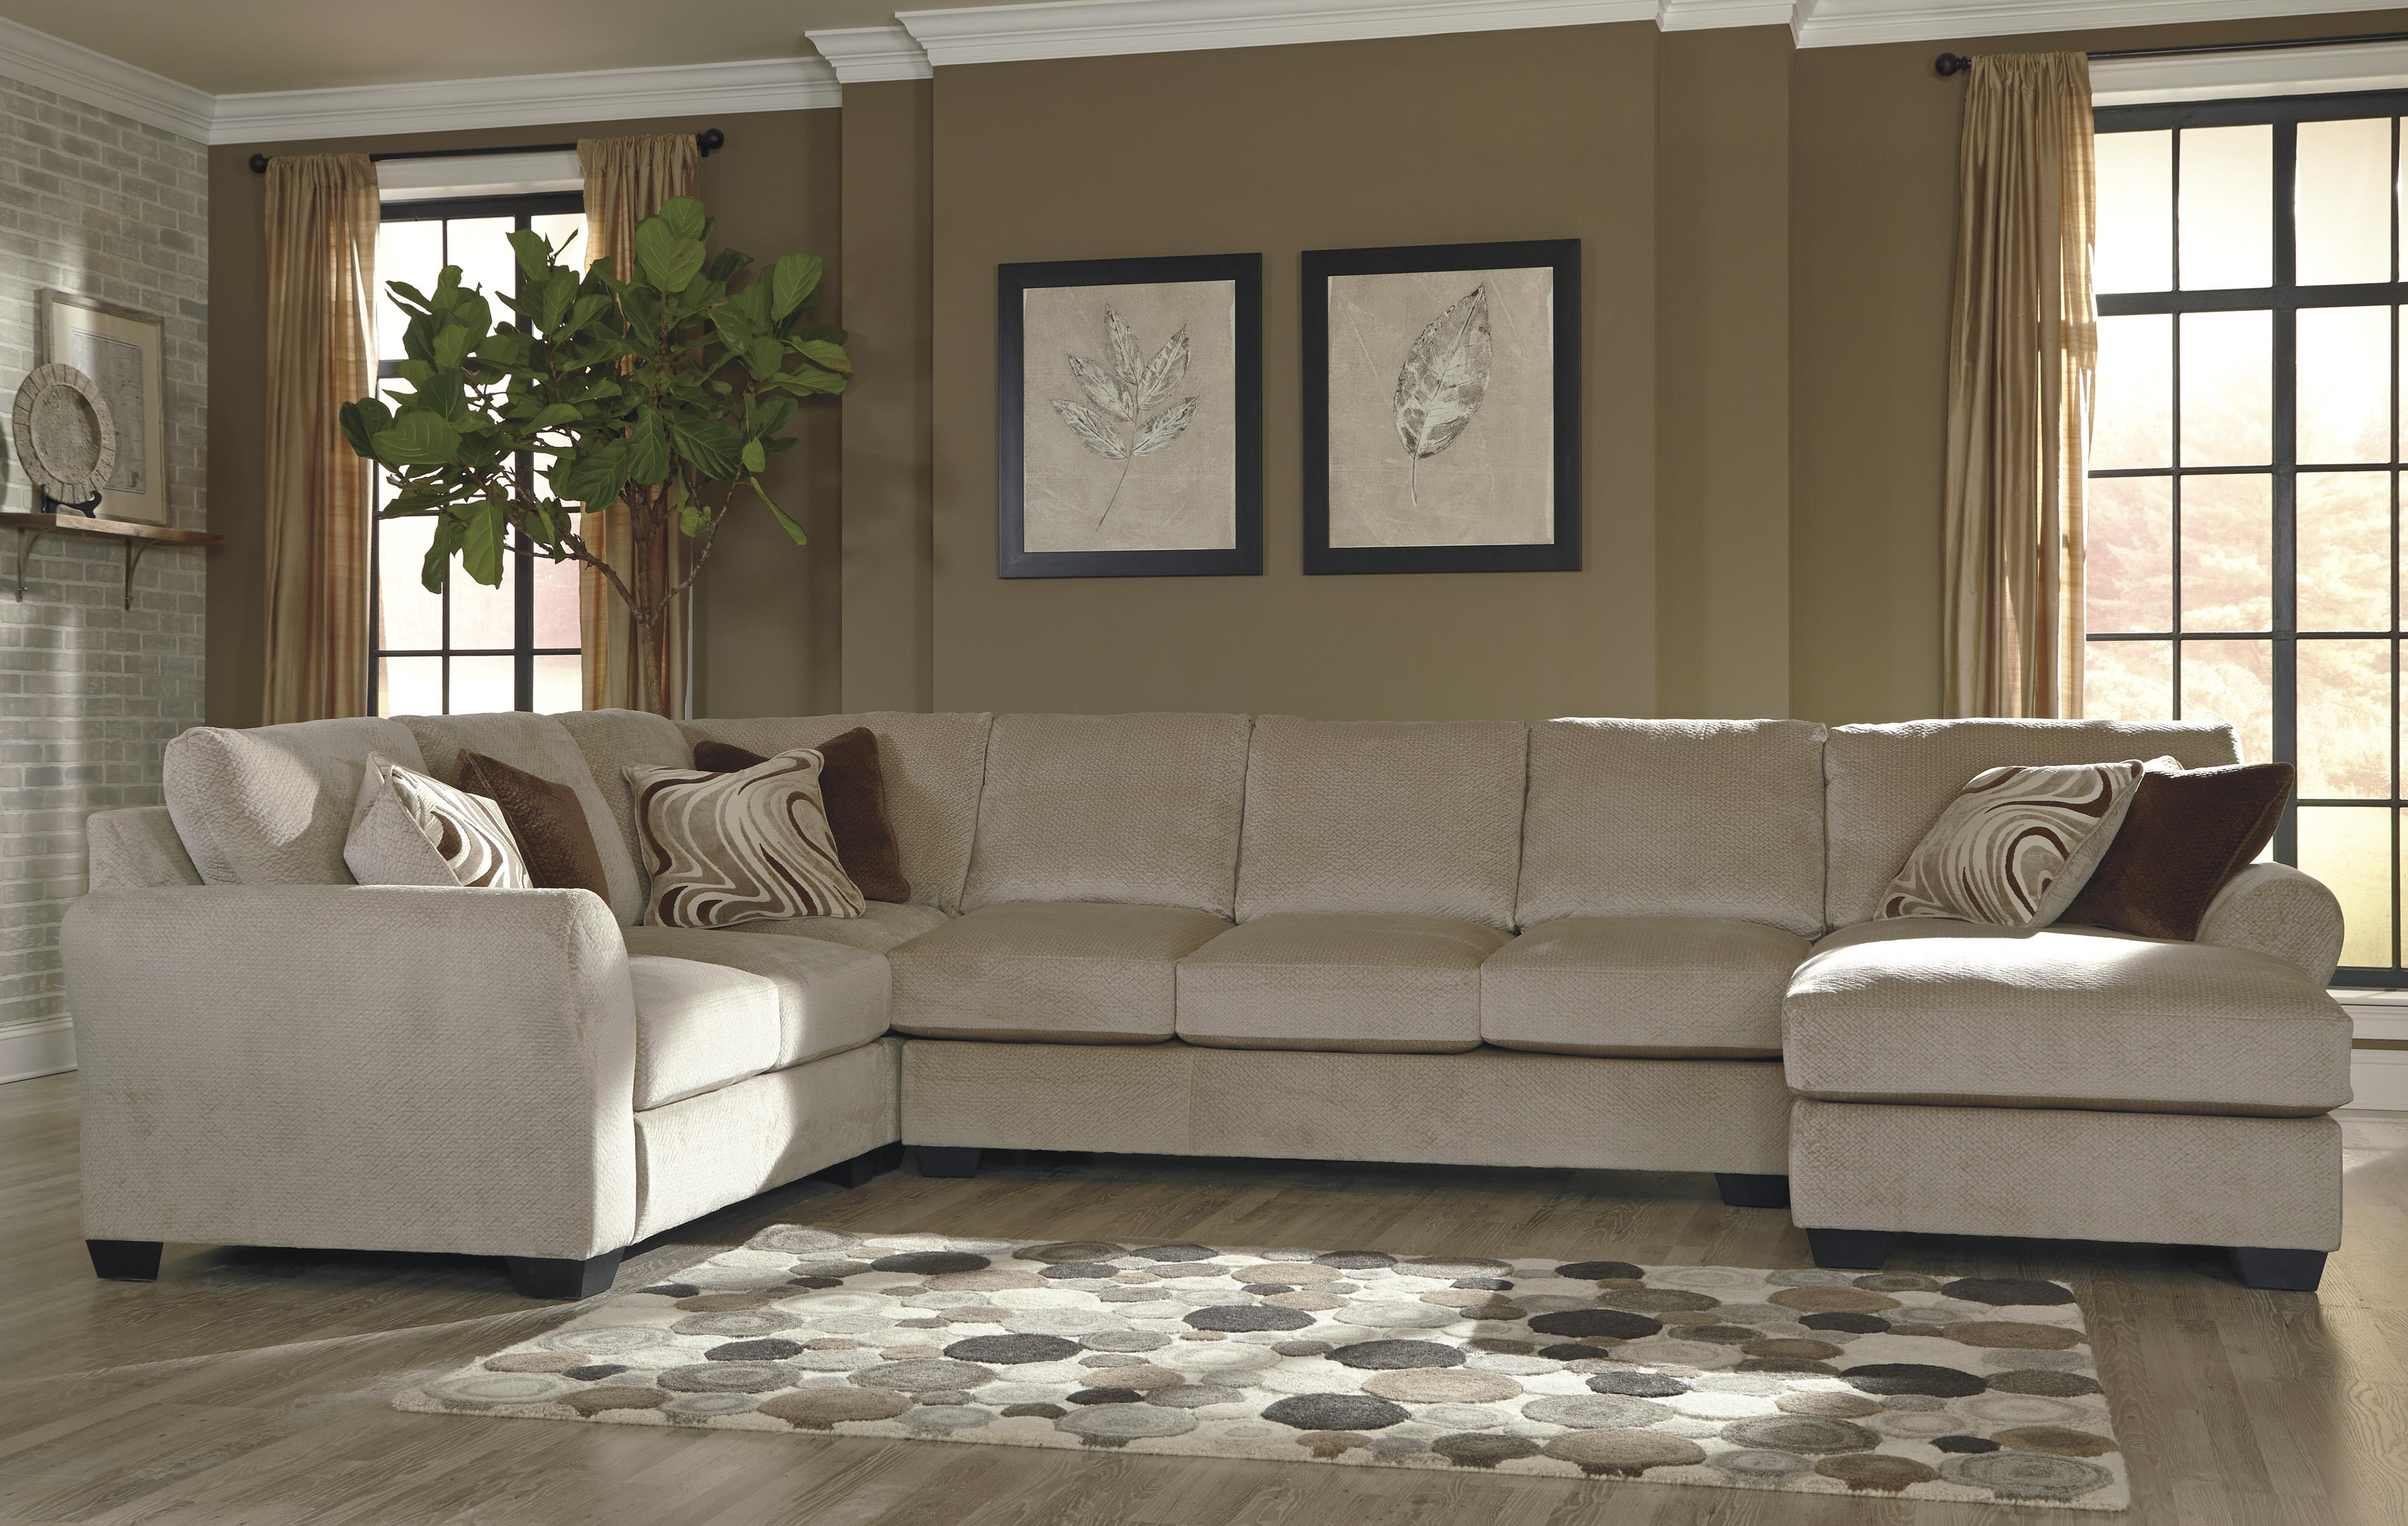 Benchcraft hazes 4 piece sectional w armless sofa right for Armless sectional sofa chaise